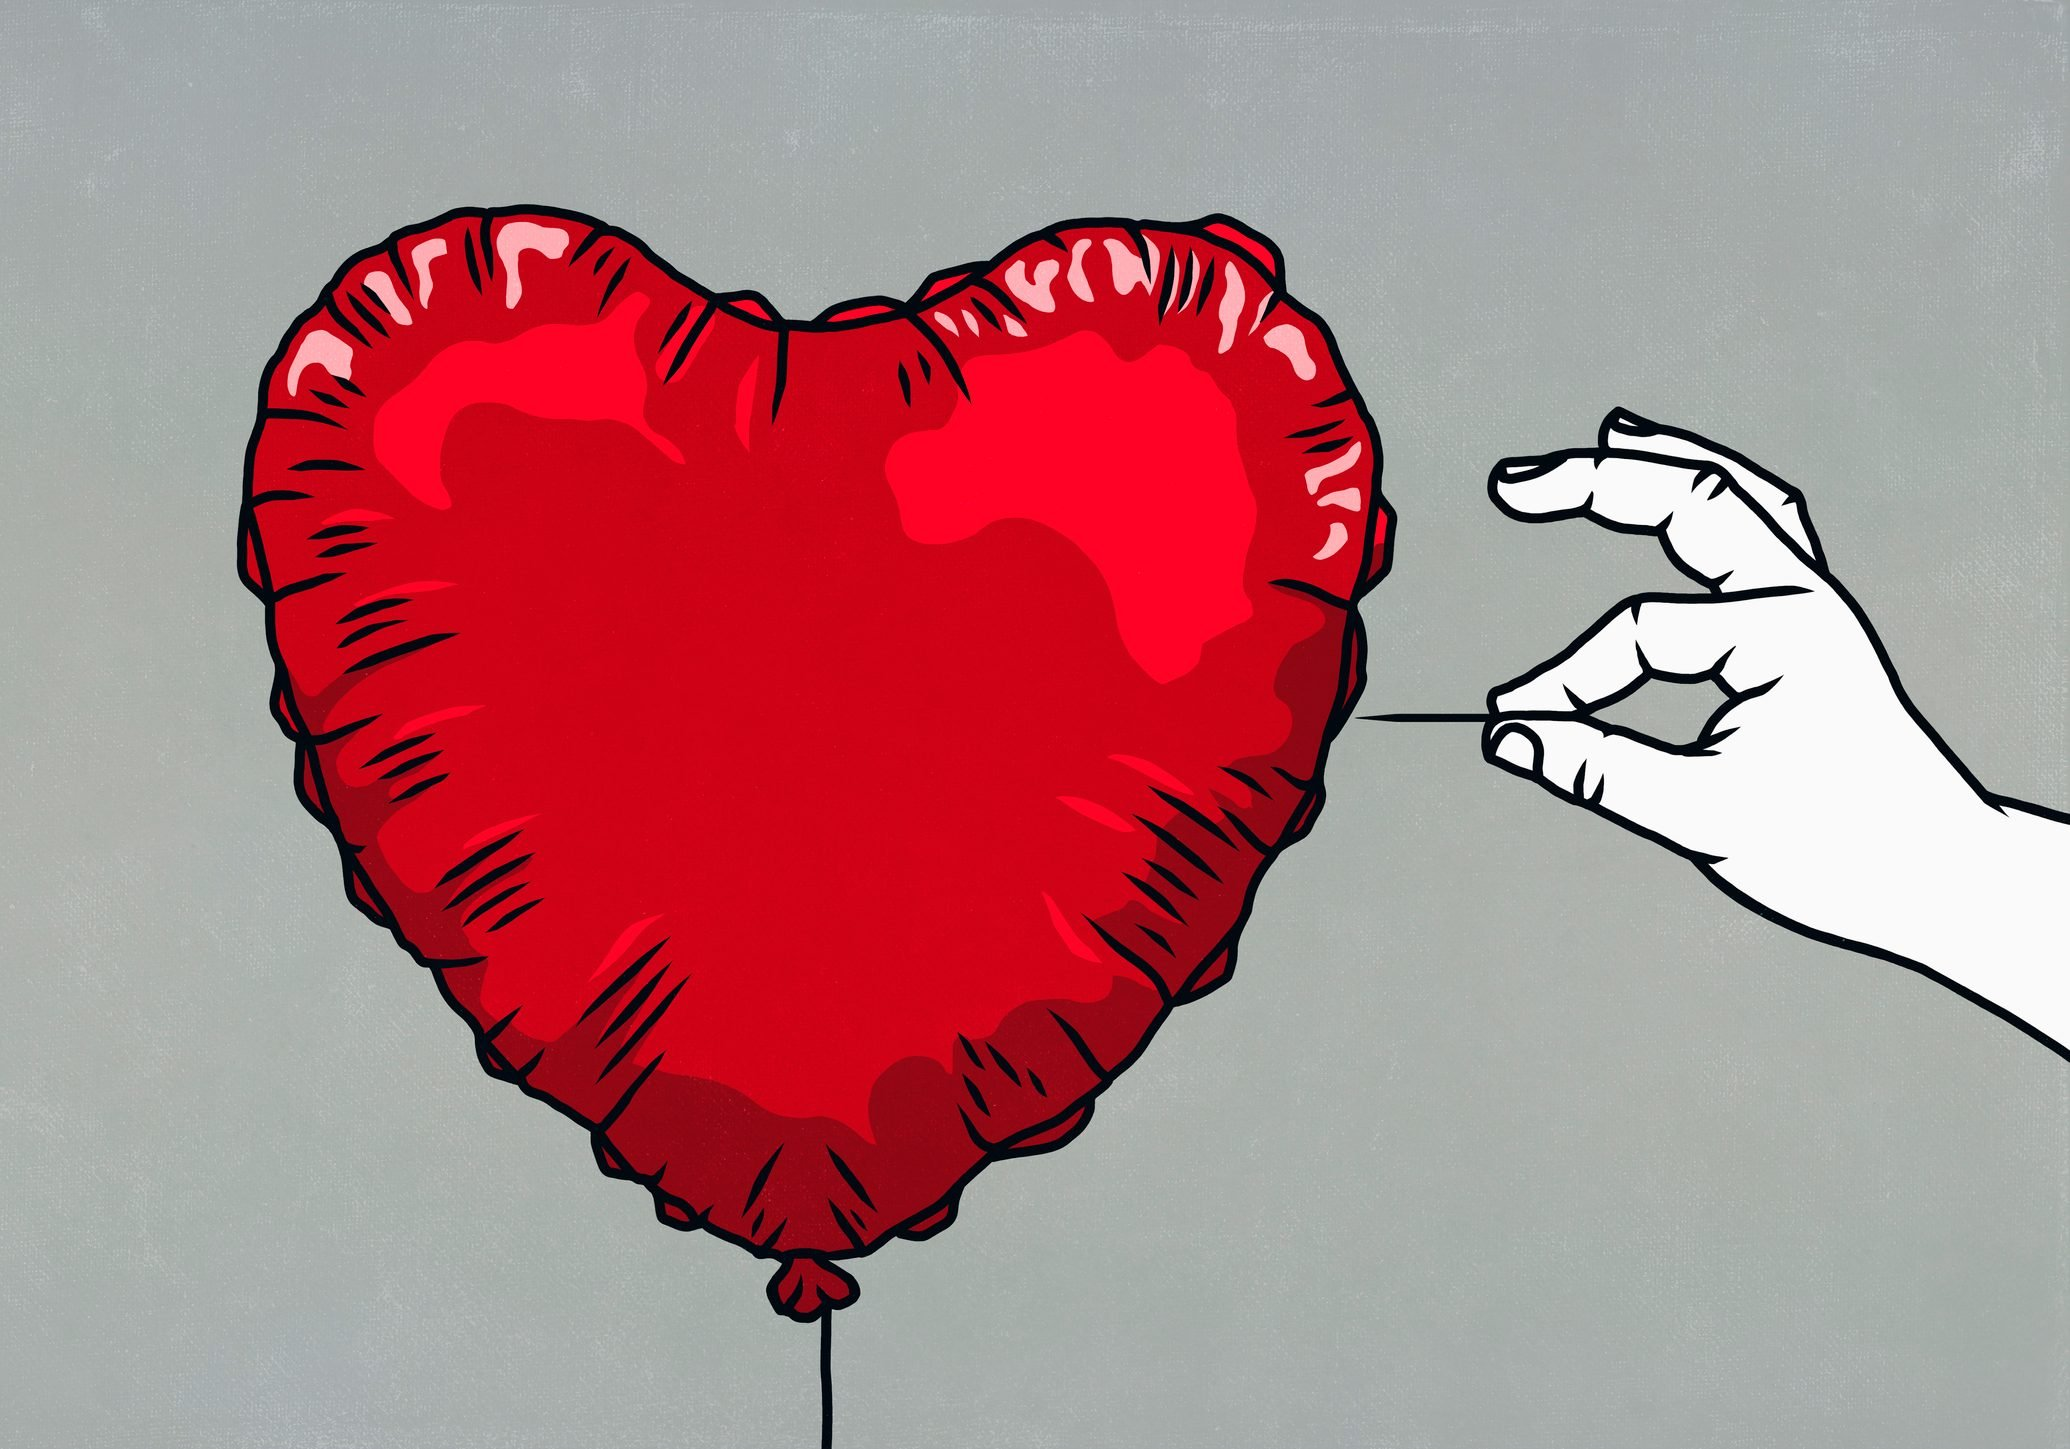 hand with pin ready to pop red heart balloon illustration